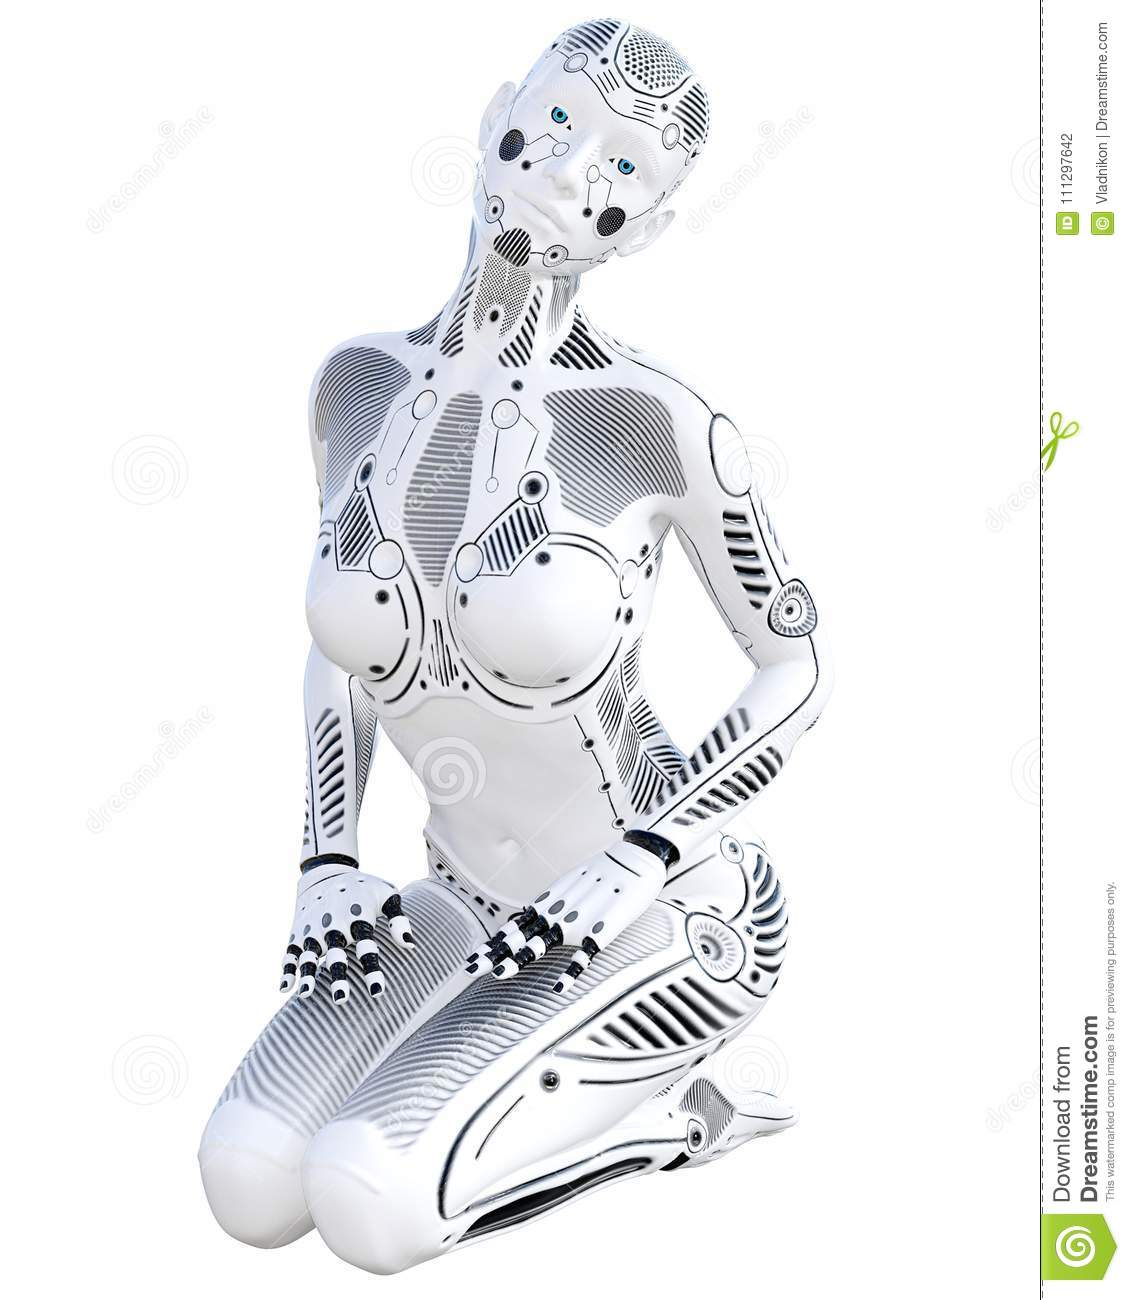 Mujer del robot Droid del metal blanco Inteligencia artificial